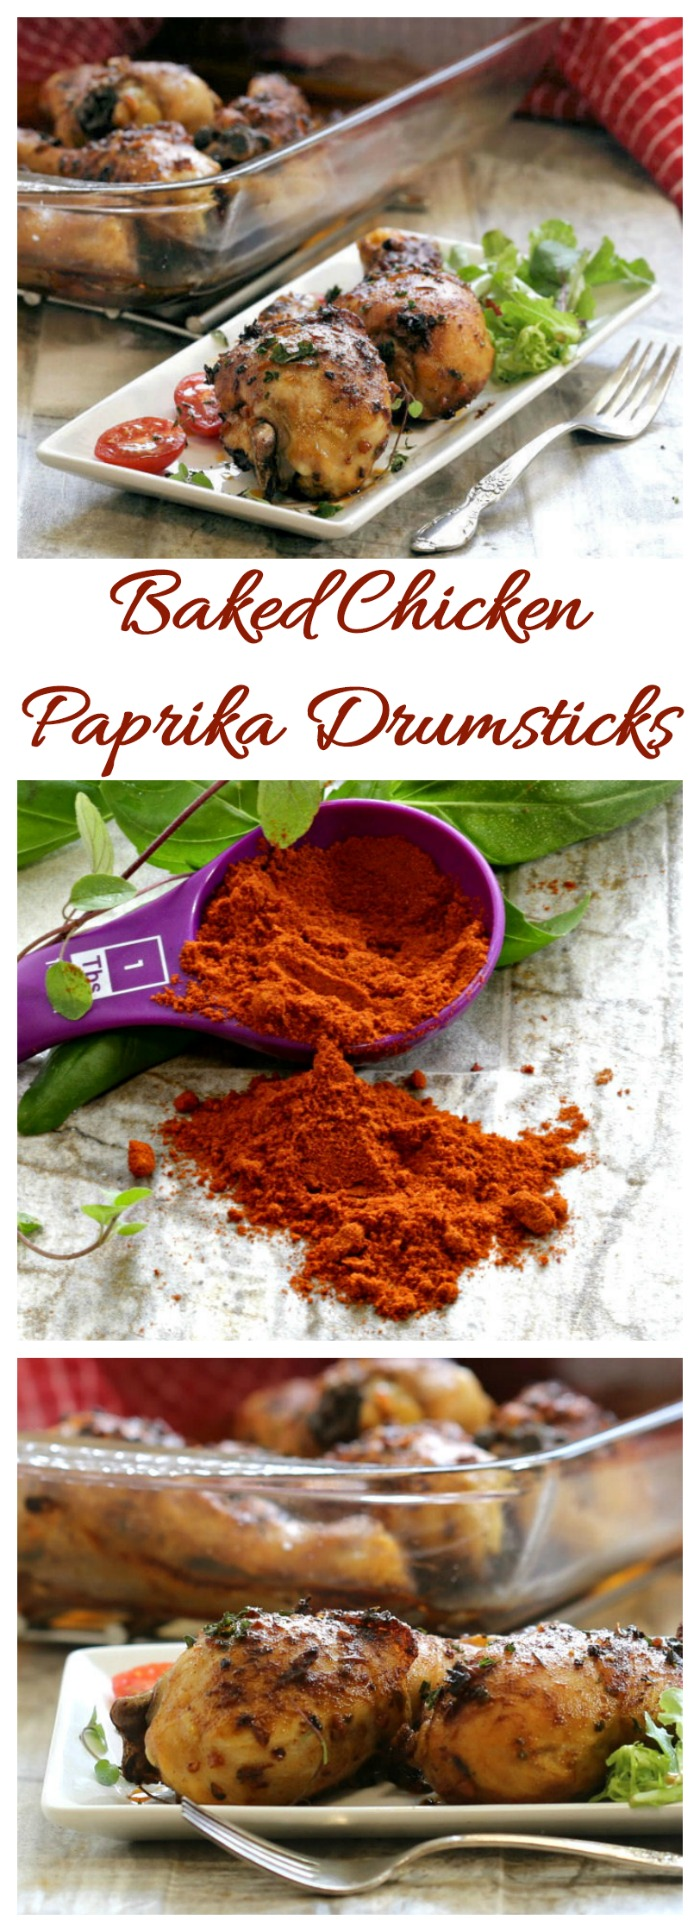 These baked chicken paprika drumsticks are fork tender and so juicy. The paprika herb marinade makes them taste amazing.